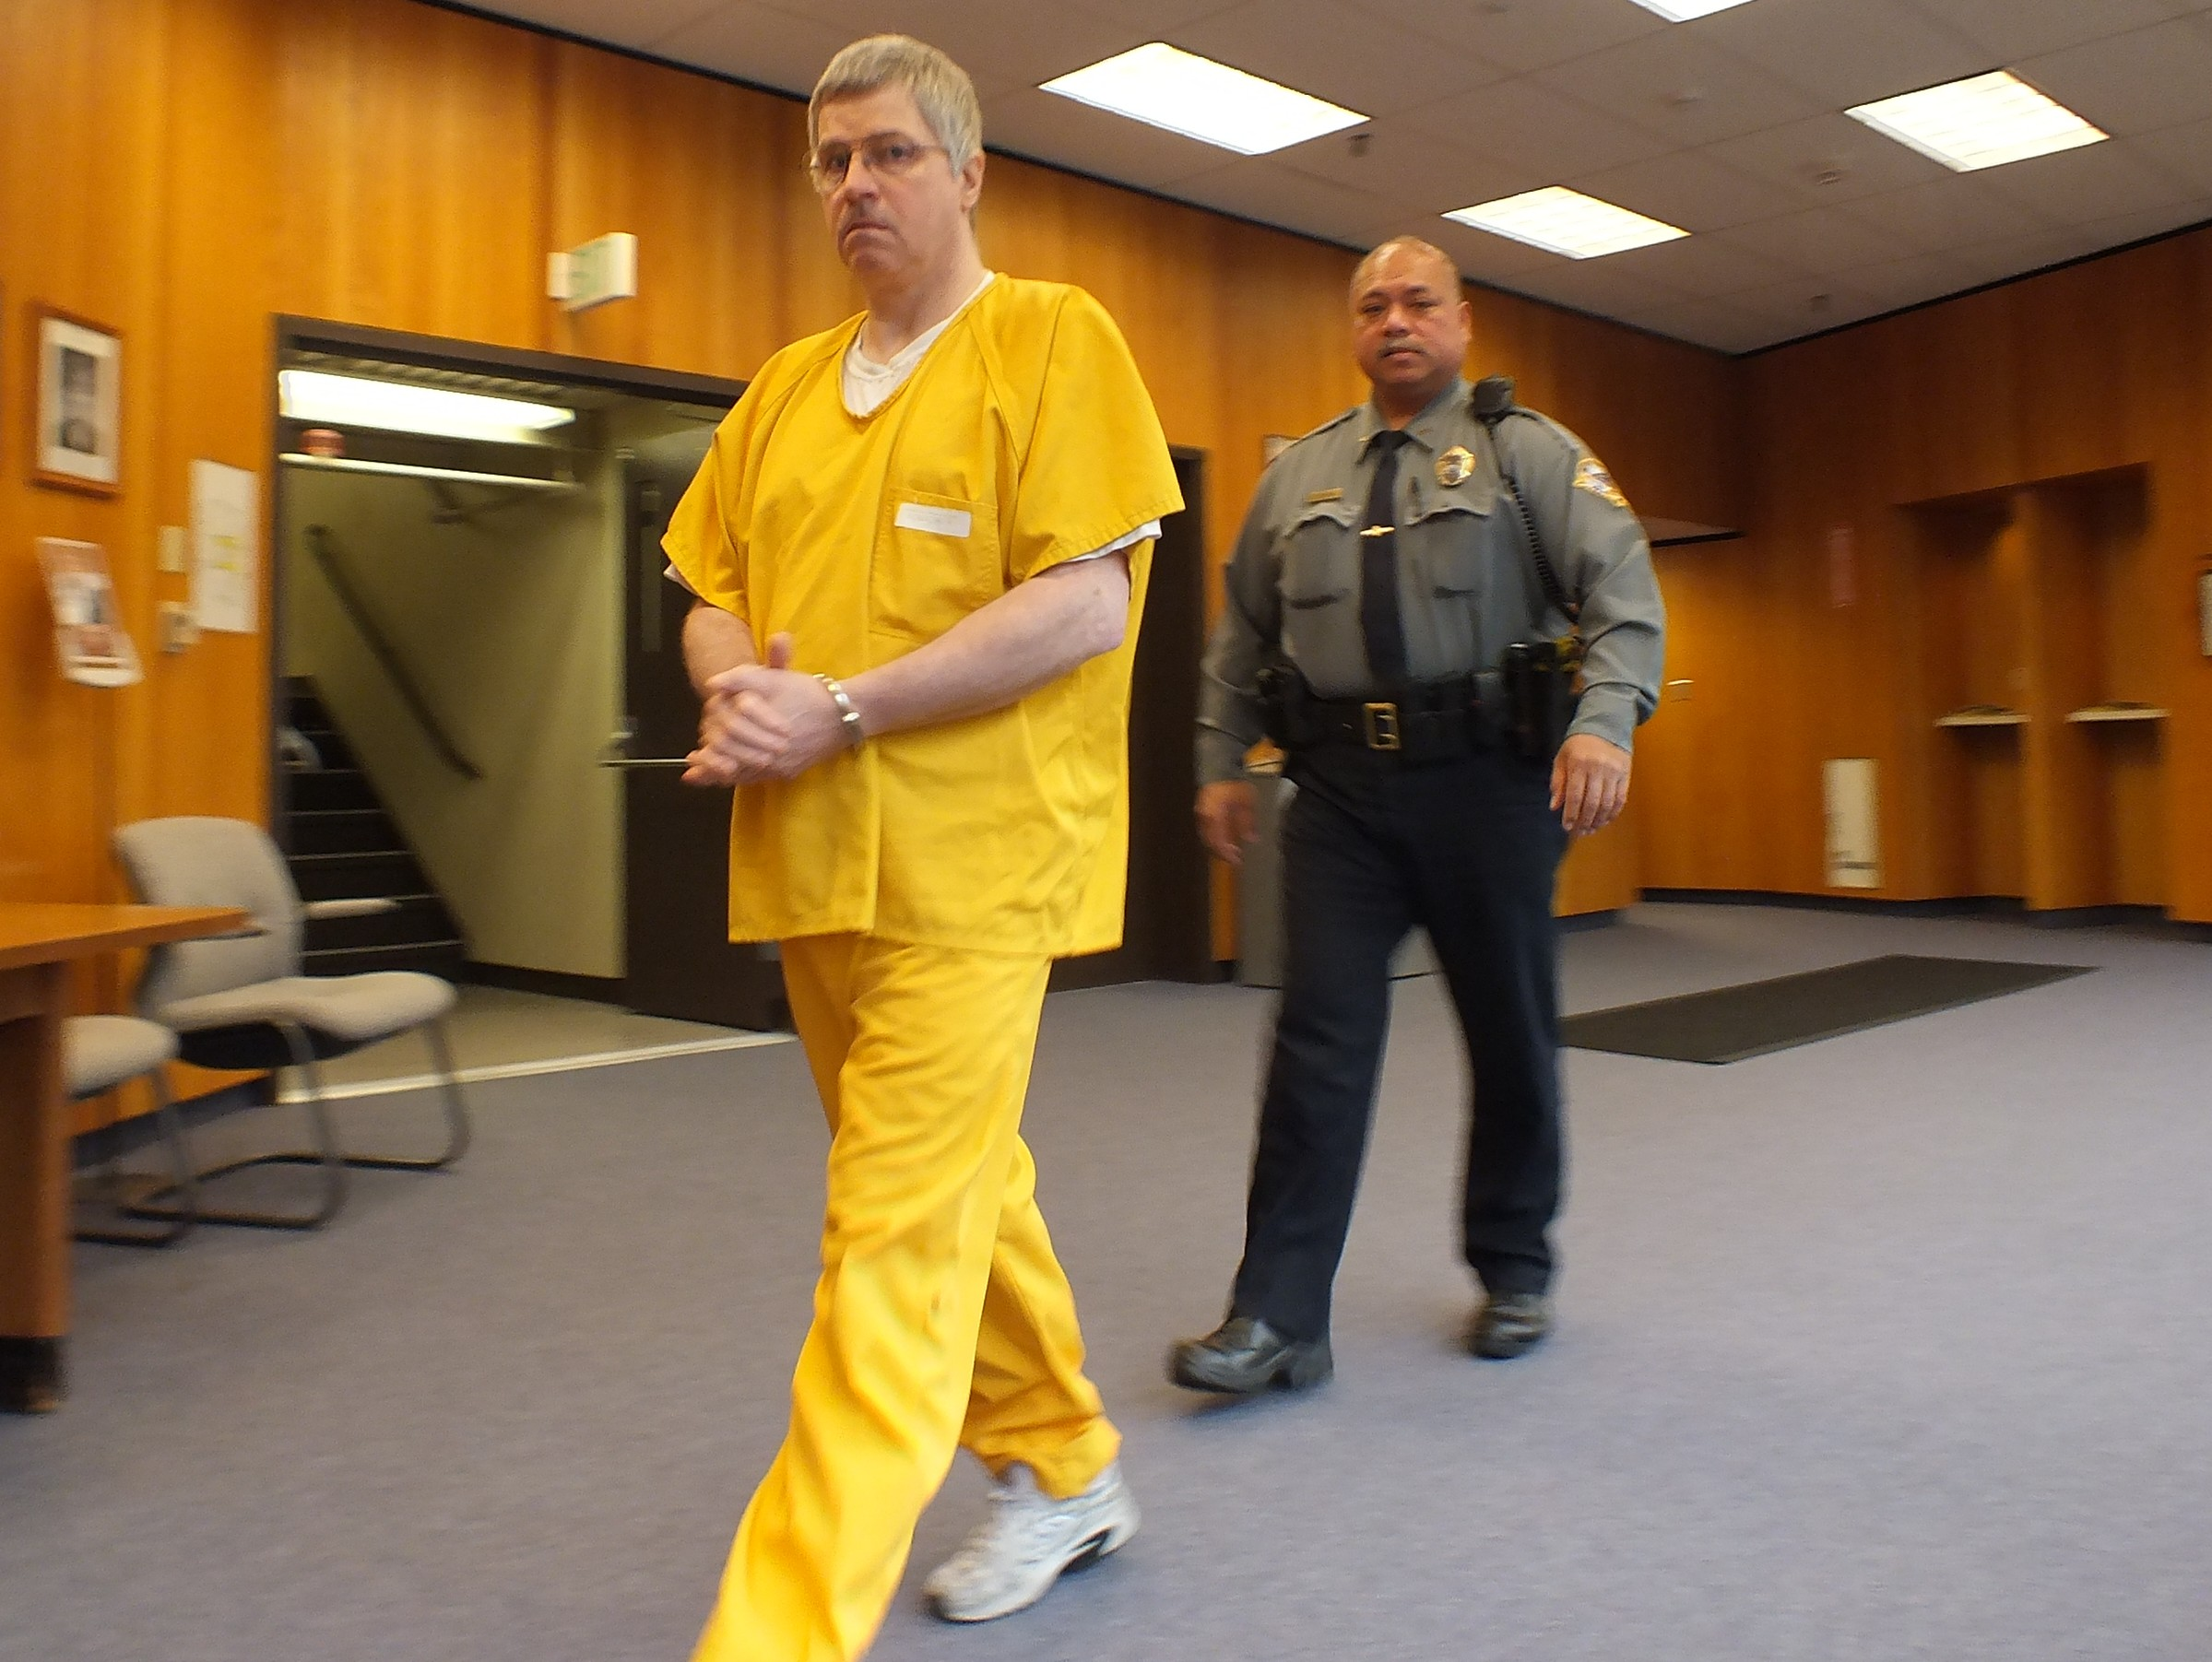 Robert Kowalski (left in yellow) walks under escort by a Judicial Services officer to a hearing at the Dimond Court Building. Photo by Matt Miller/KTOO News